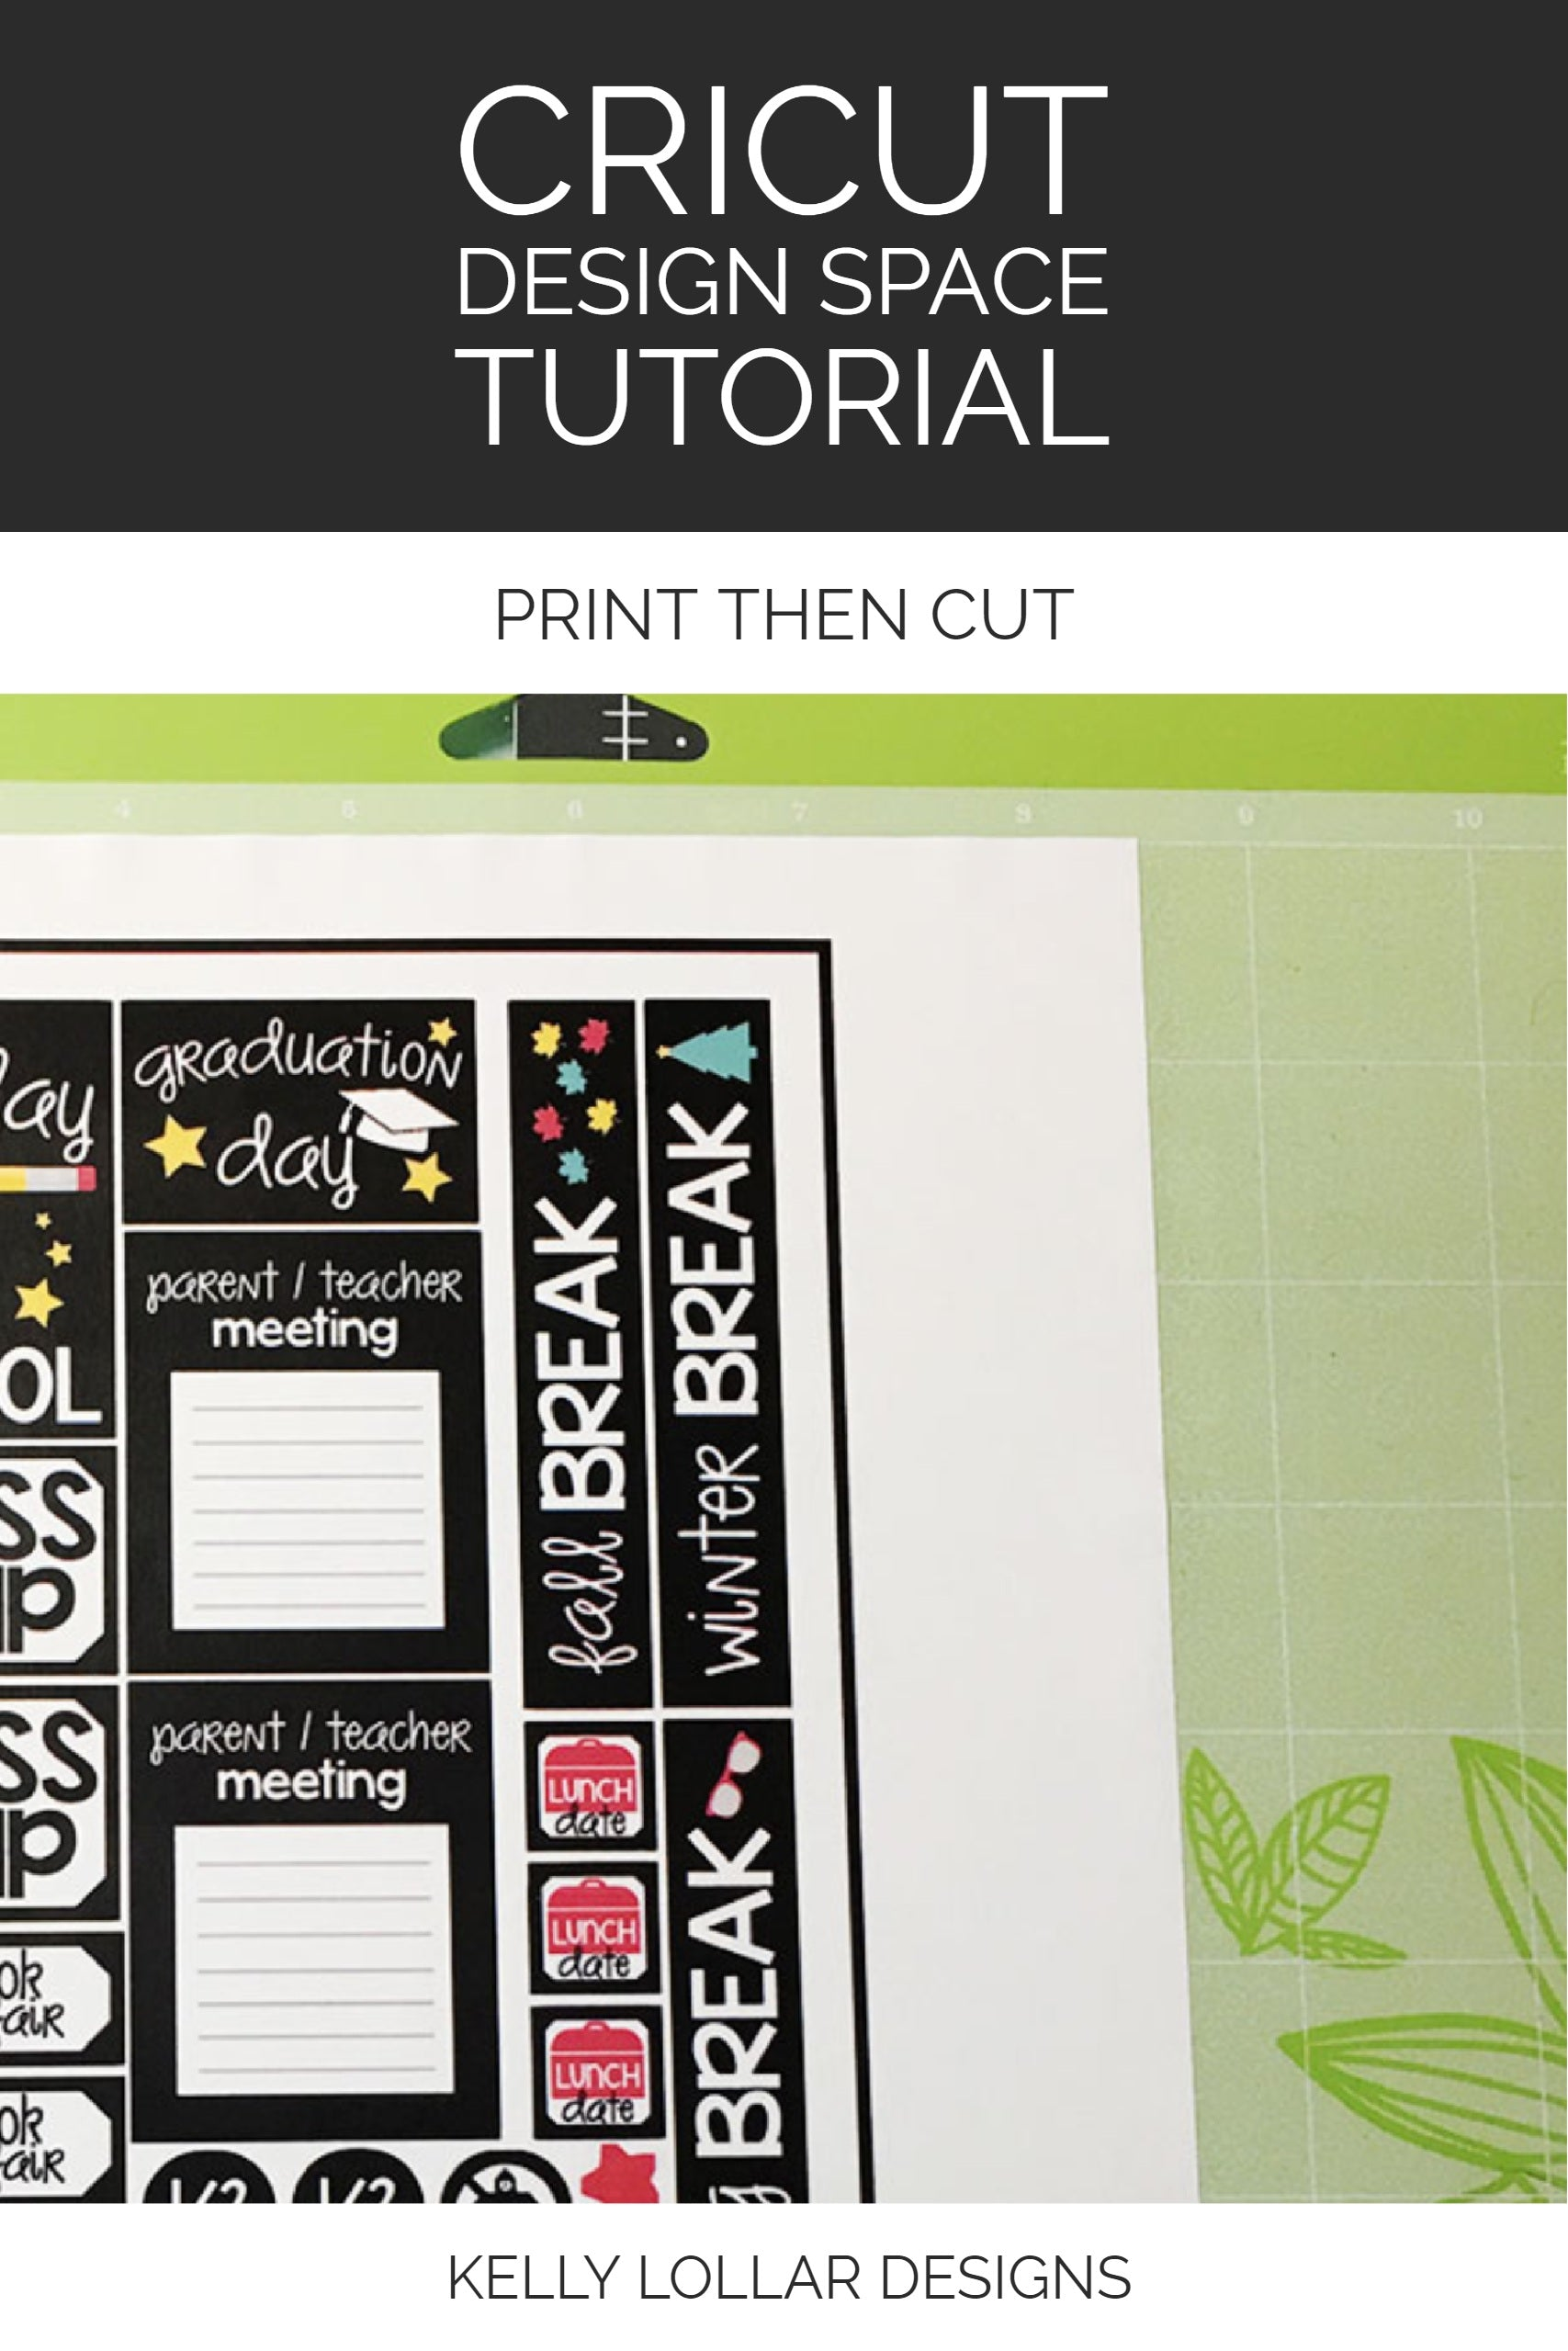 Cricut Design Space Tutorial - Print Then Cut step by step directions with sample file